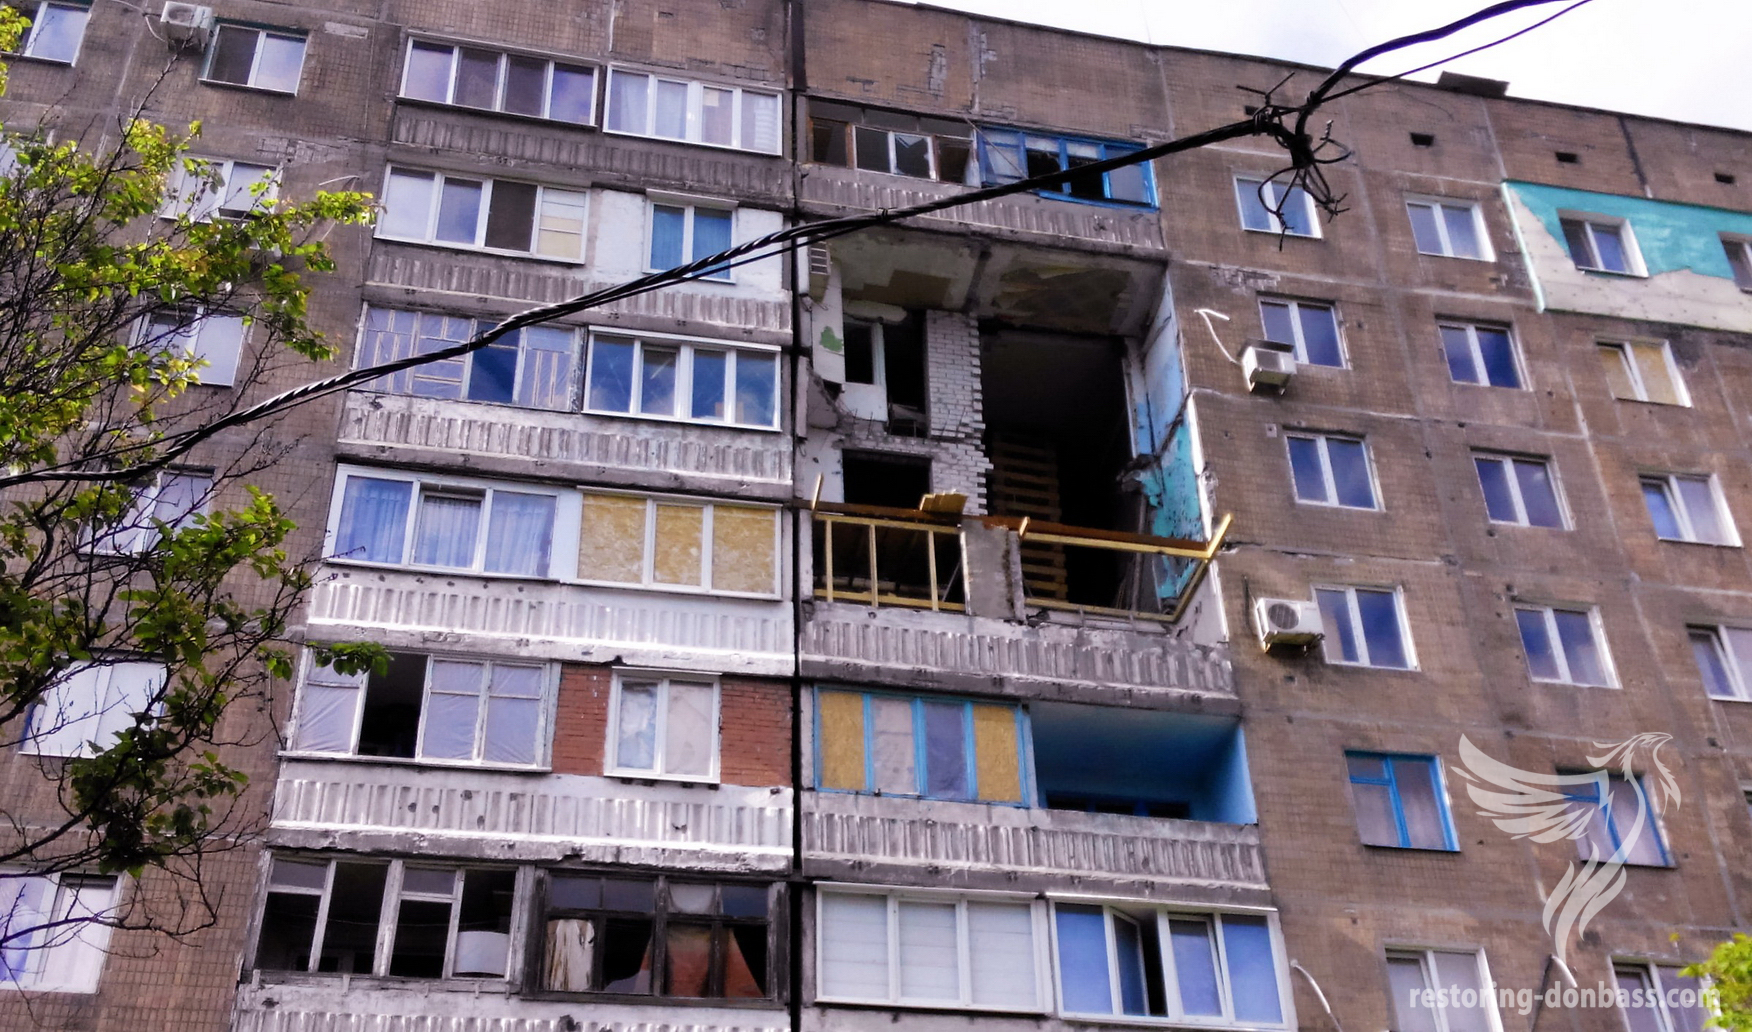 Destructions in the Petrovsky district, city of Donetsk